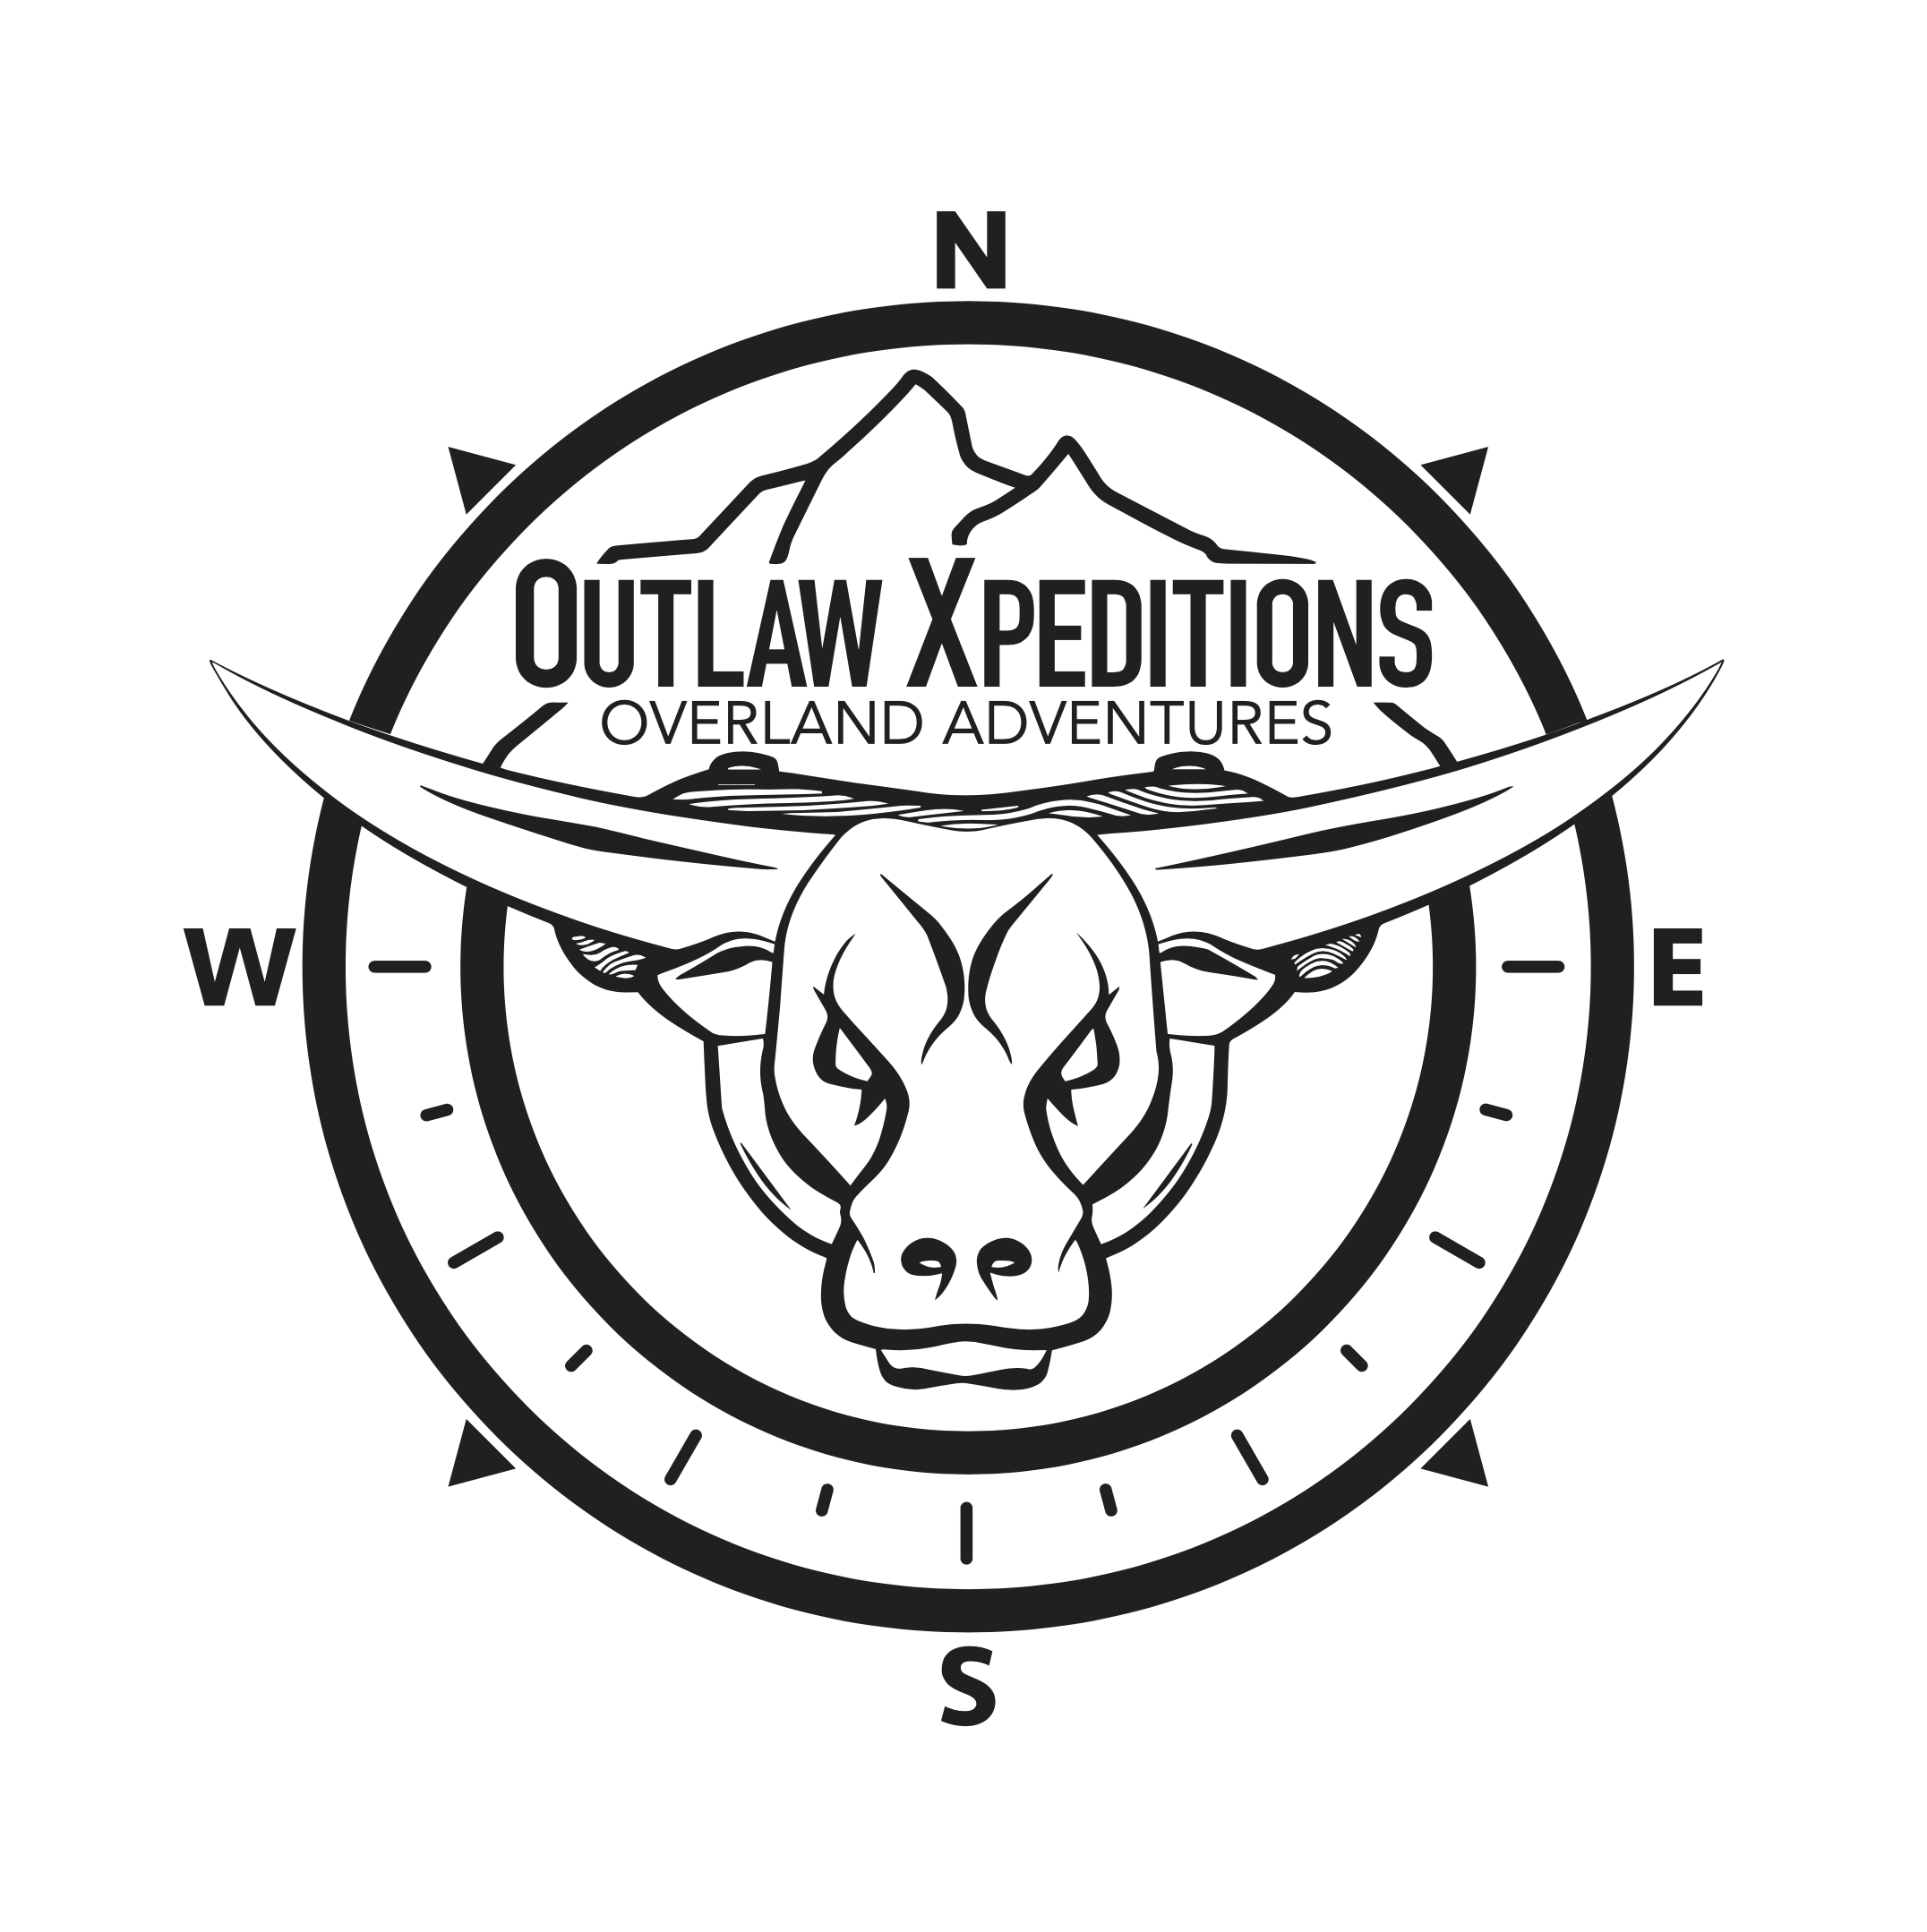 Outlaw Xpeditions - black on white logo